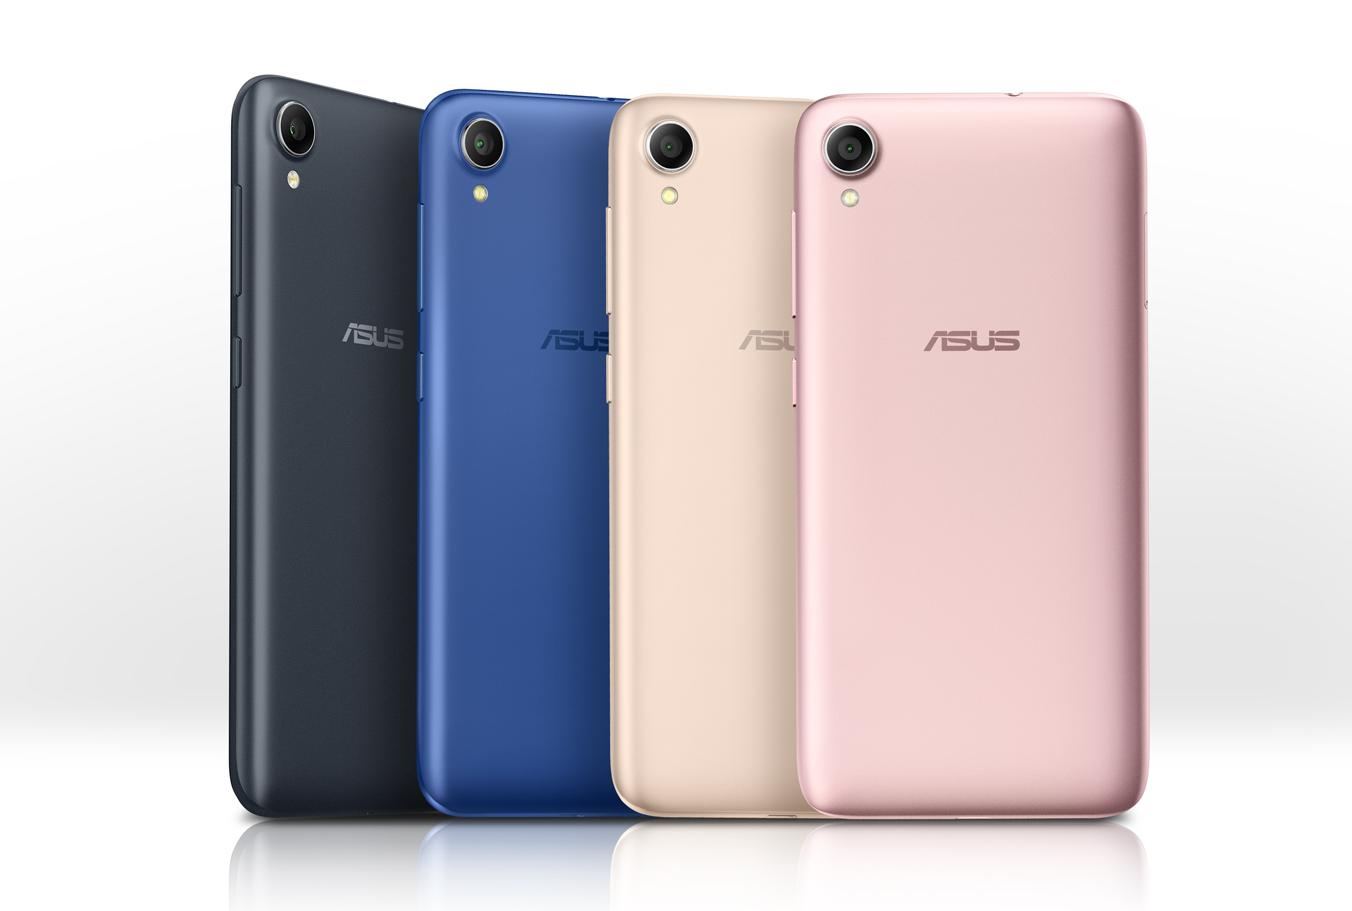 Zenfone Live - Android Go